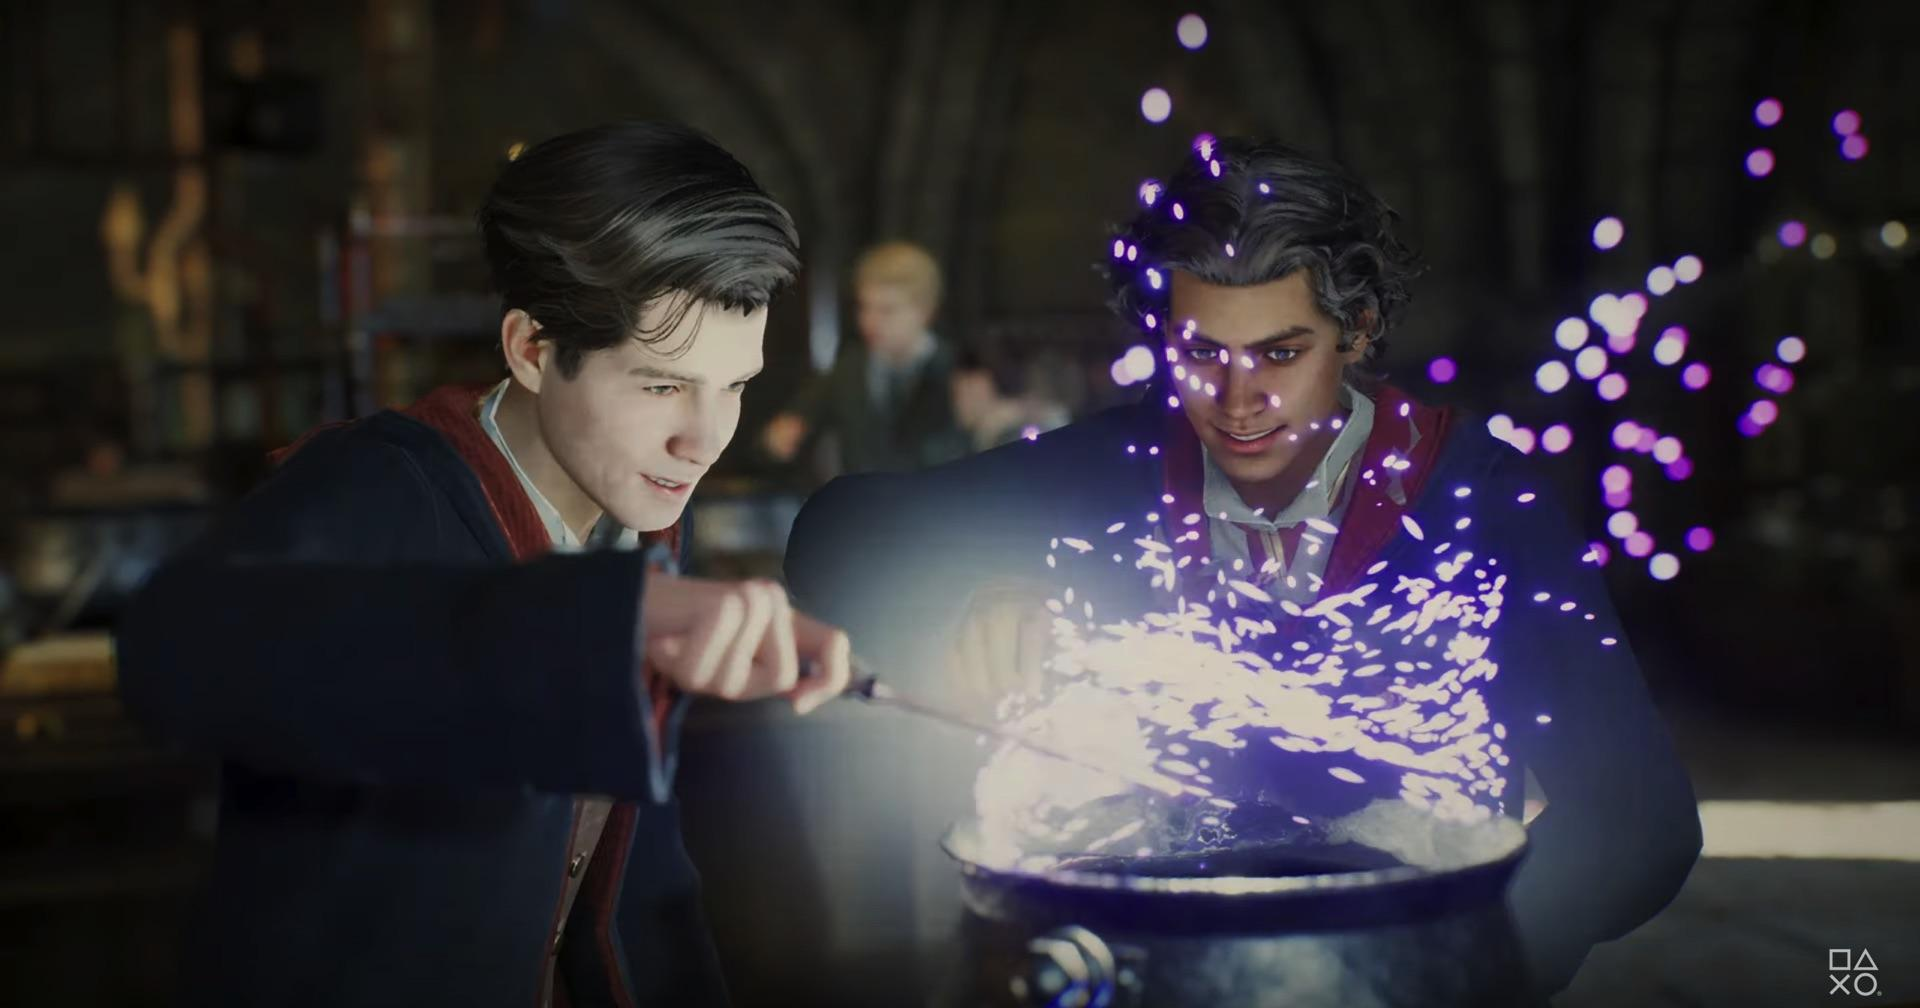 Warner Bros unveils new Harry Potter game 'Hogwarts Legacy'